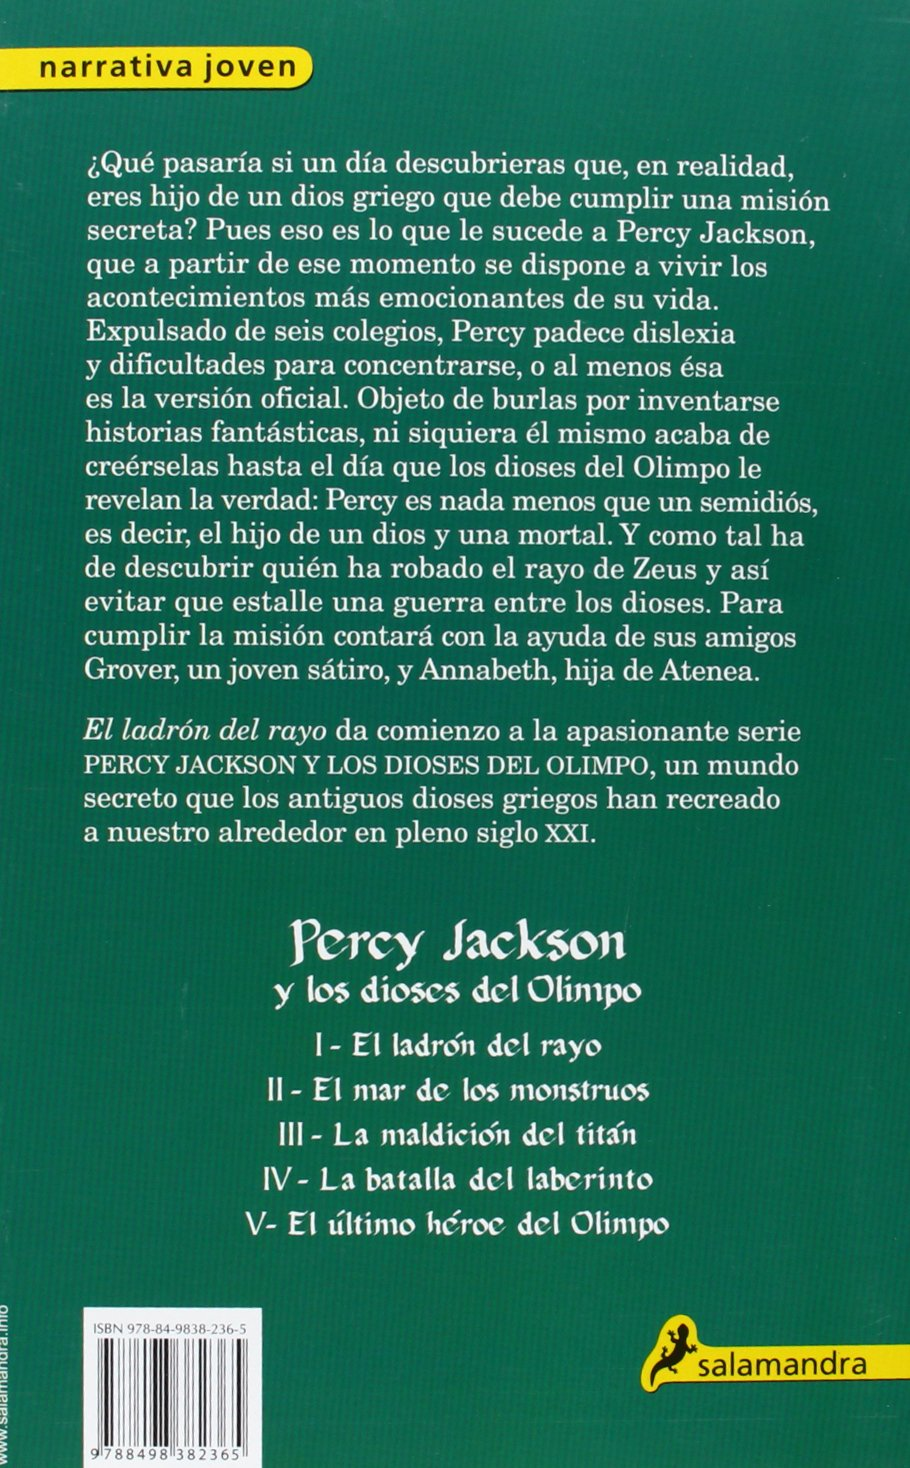 percy jackson and the lightning thief pdf archive